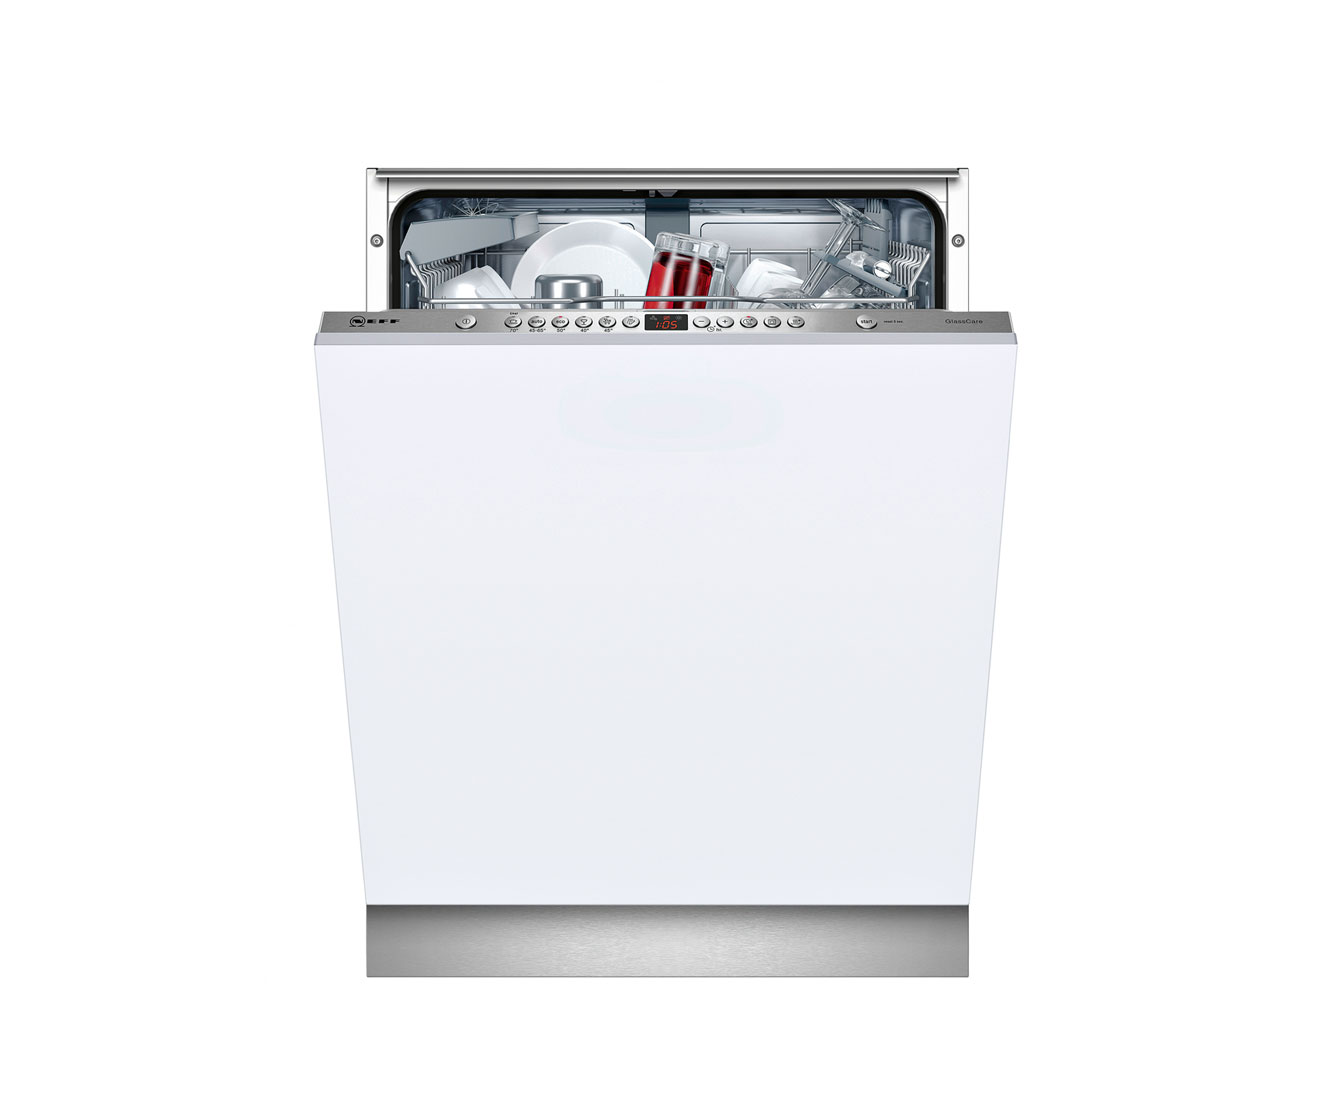 Neff S51M63X2GB Fully Integrated Standard Dishwasher - Silver